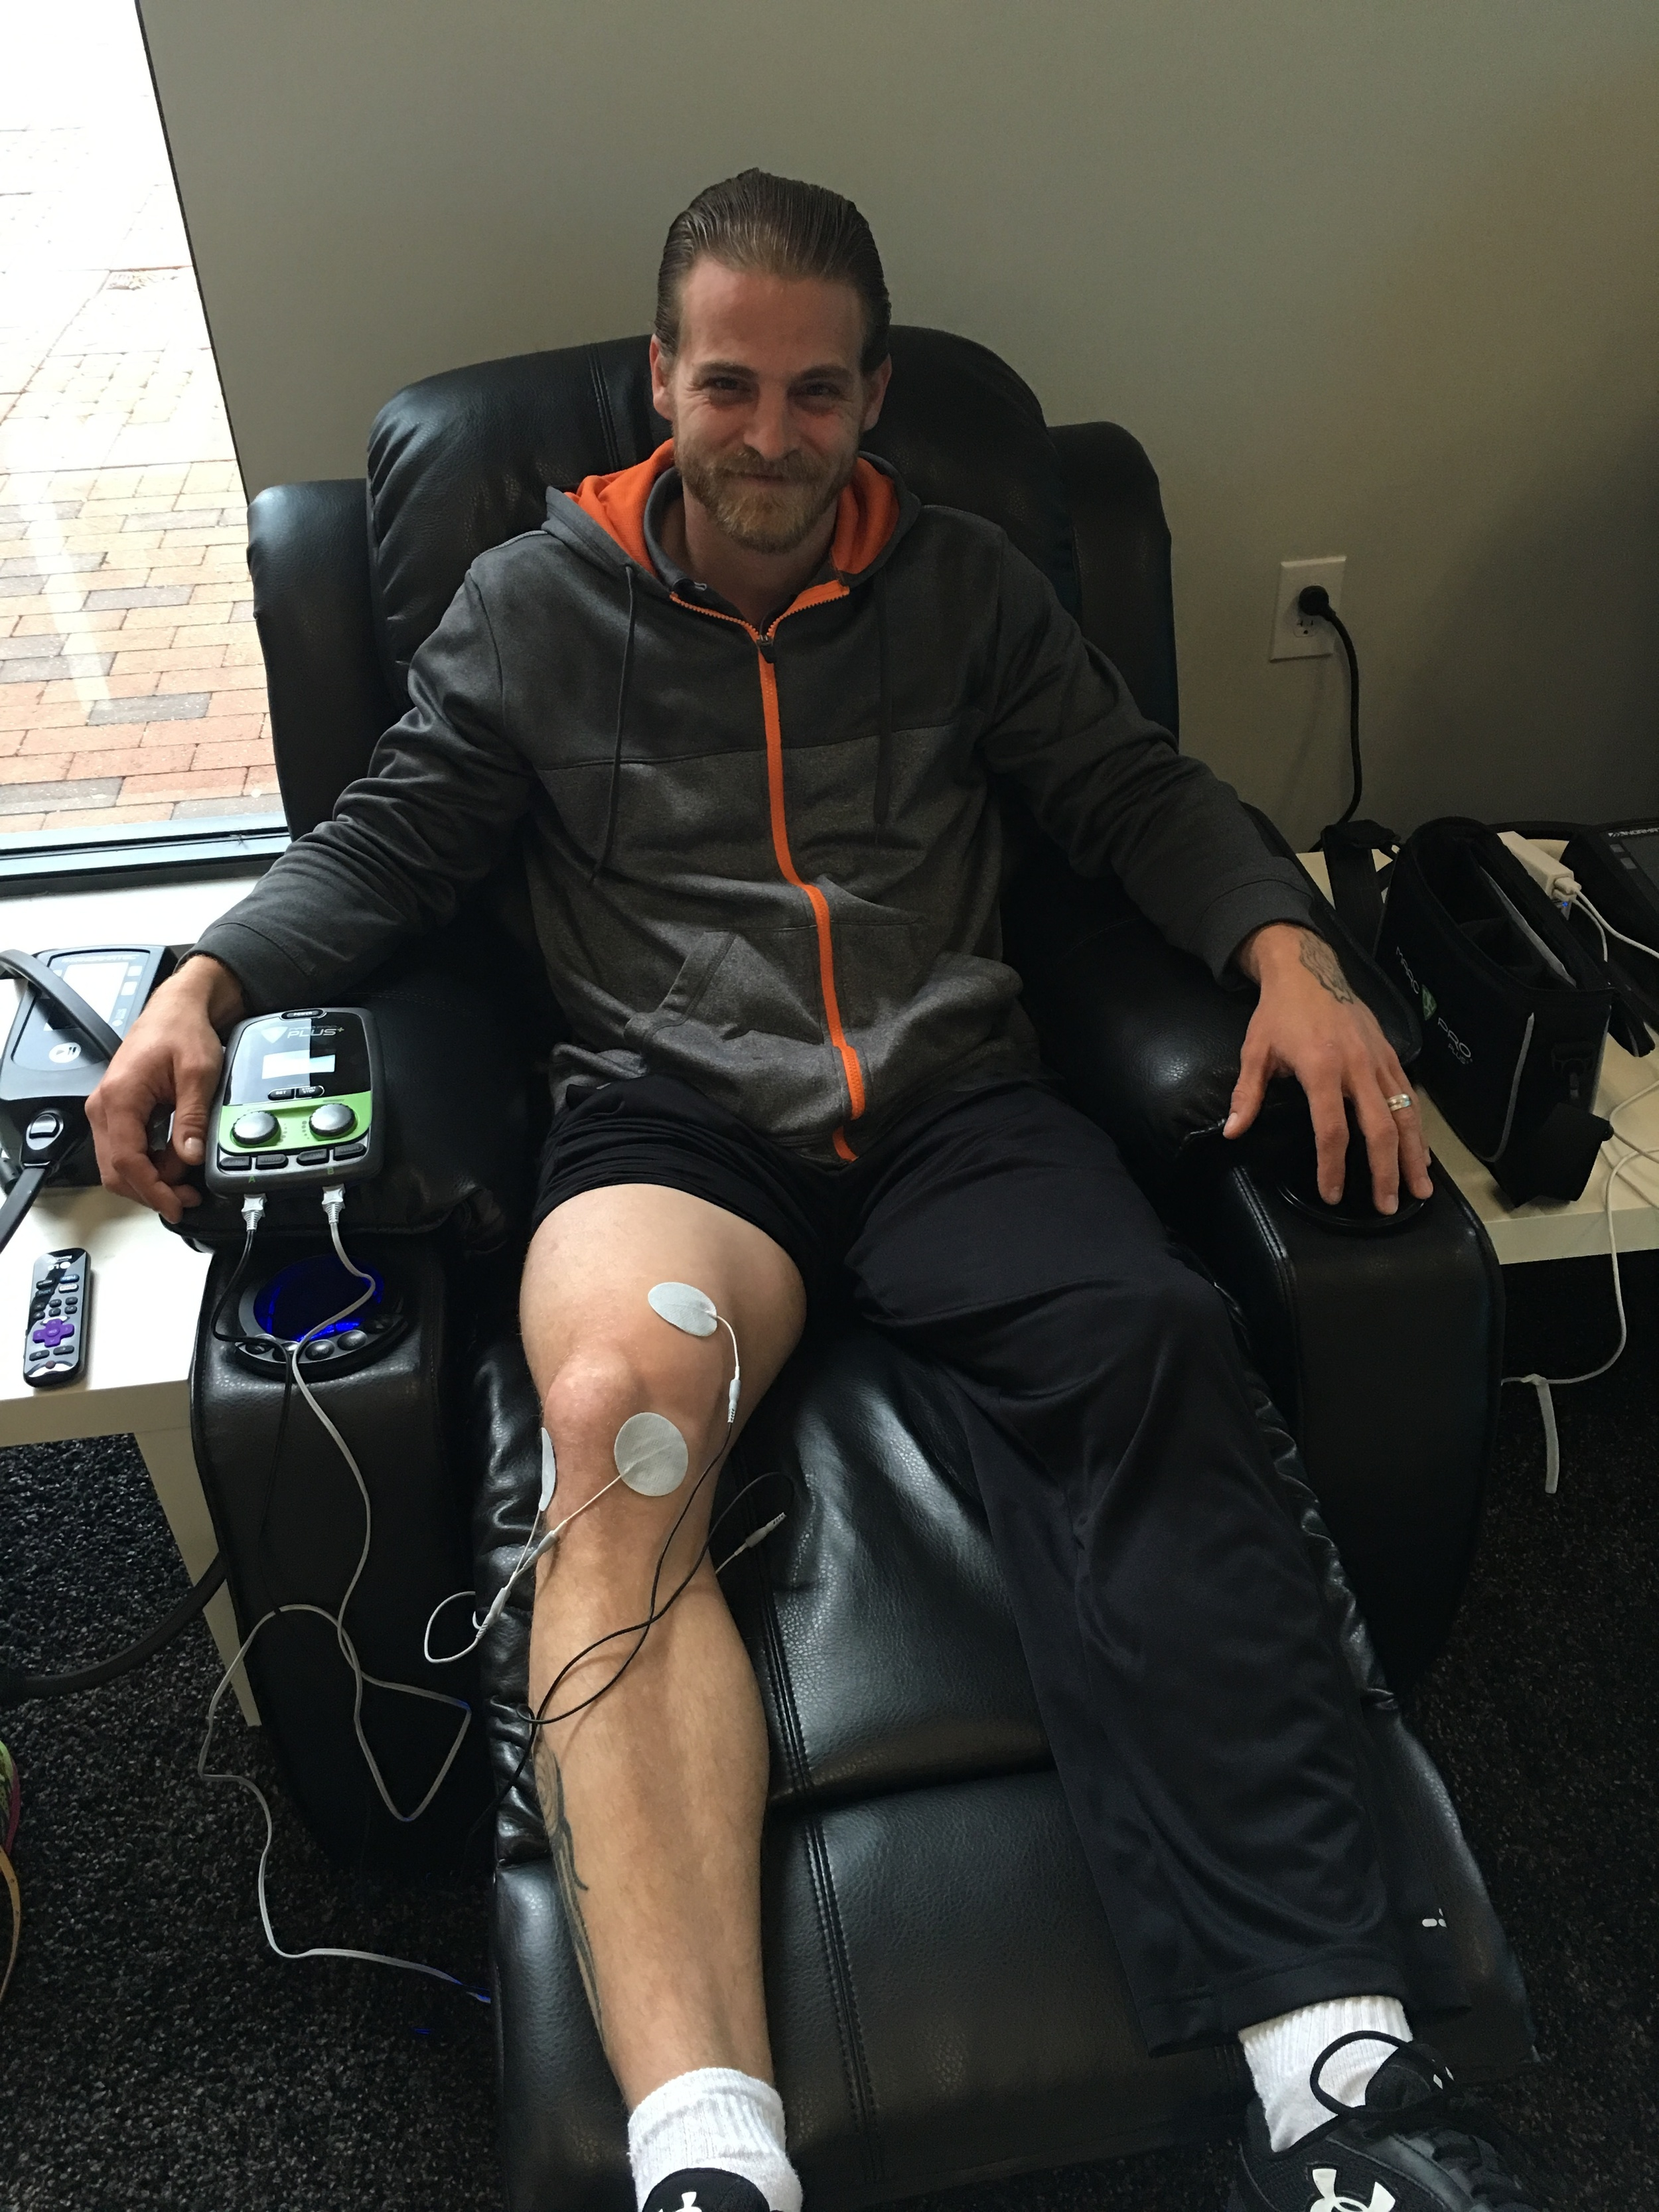 Mark Pro electrotherapy treatments in Houston, TX | Cryo Recovery